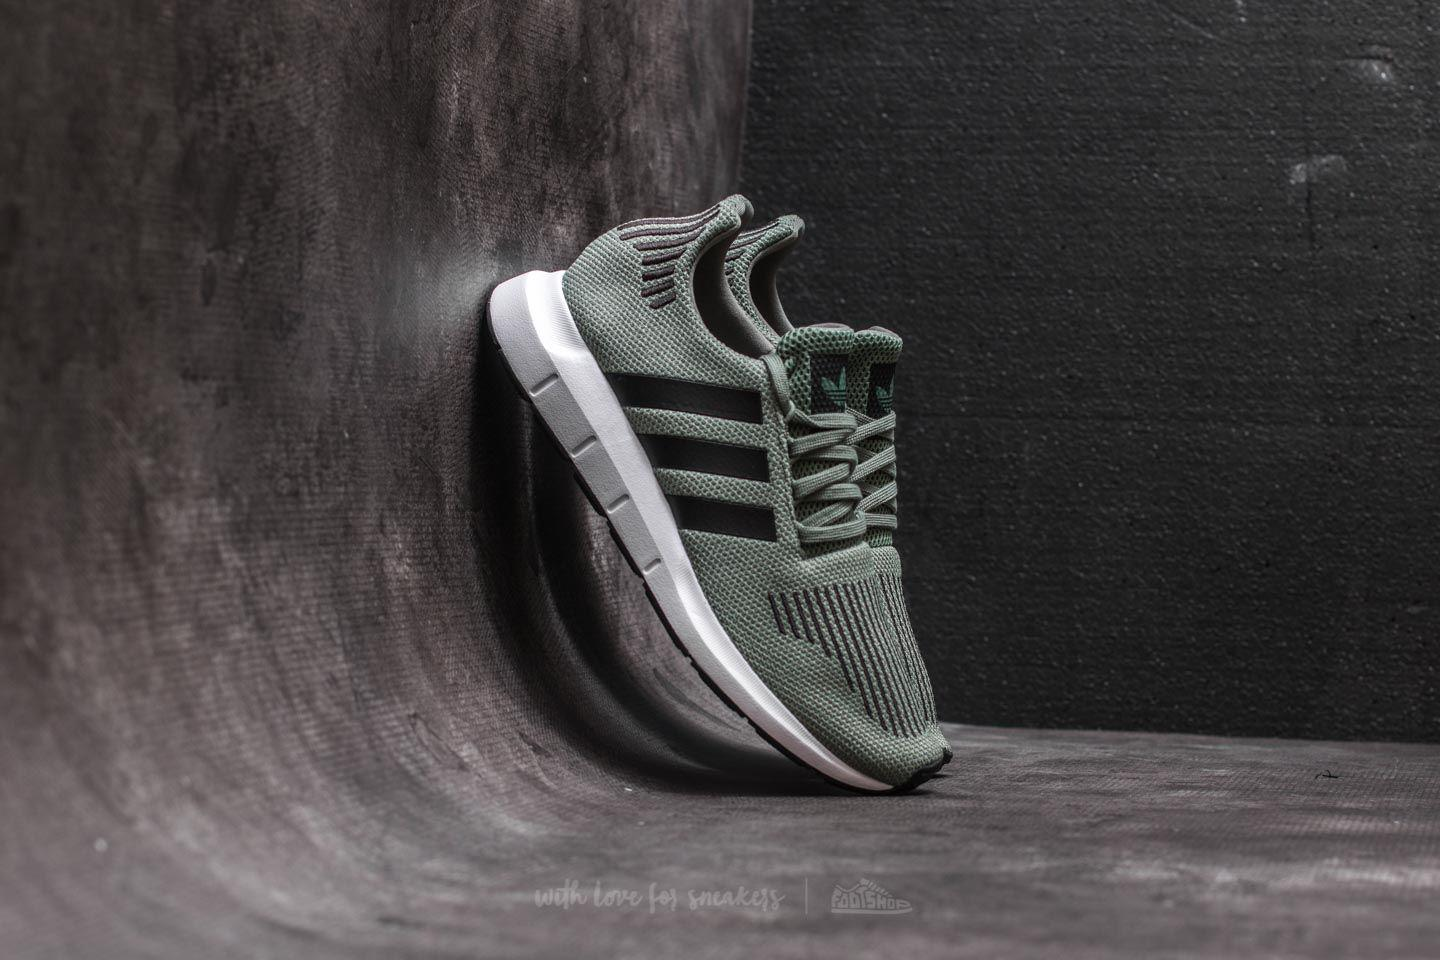 Lyst - adidas Originals Adidas Swift Run J Trace Green  Core Black ... 45888ed12b